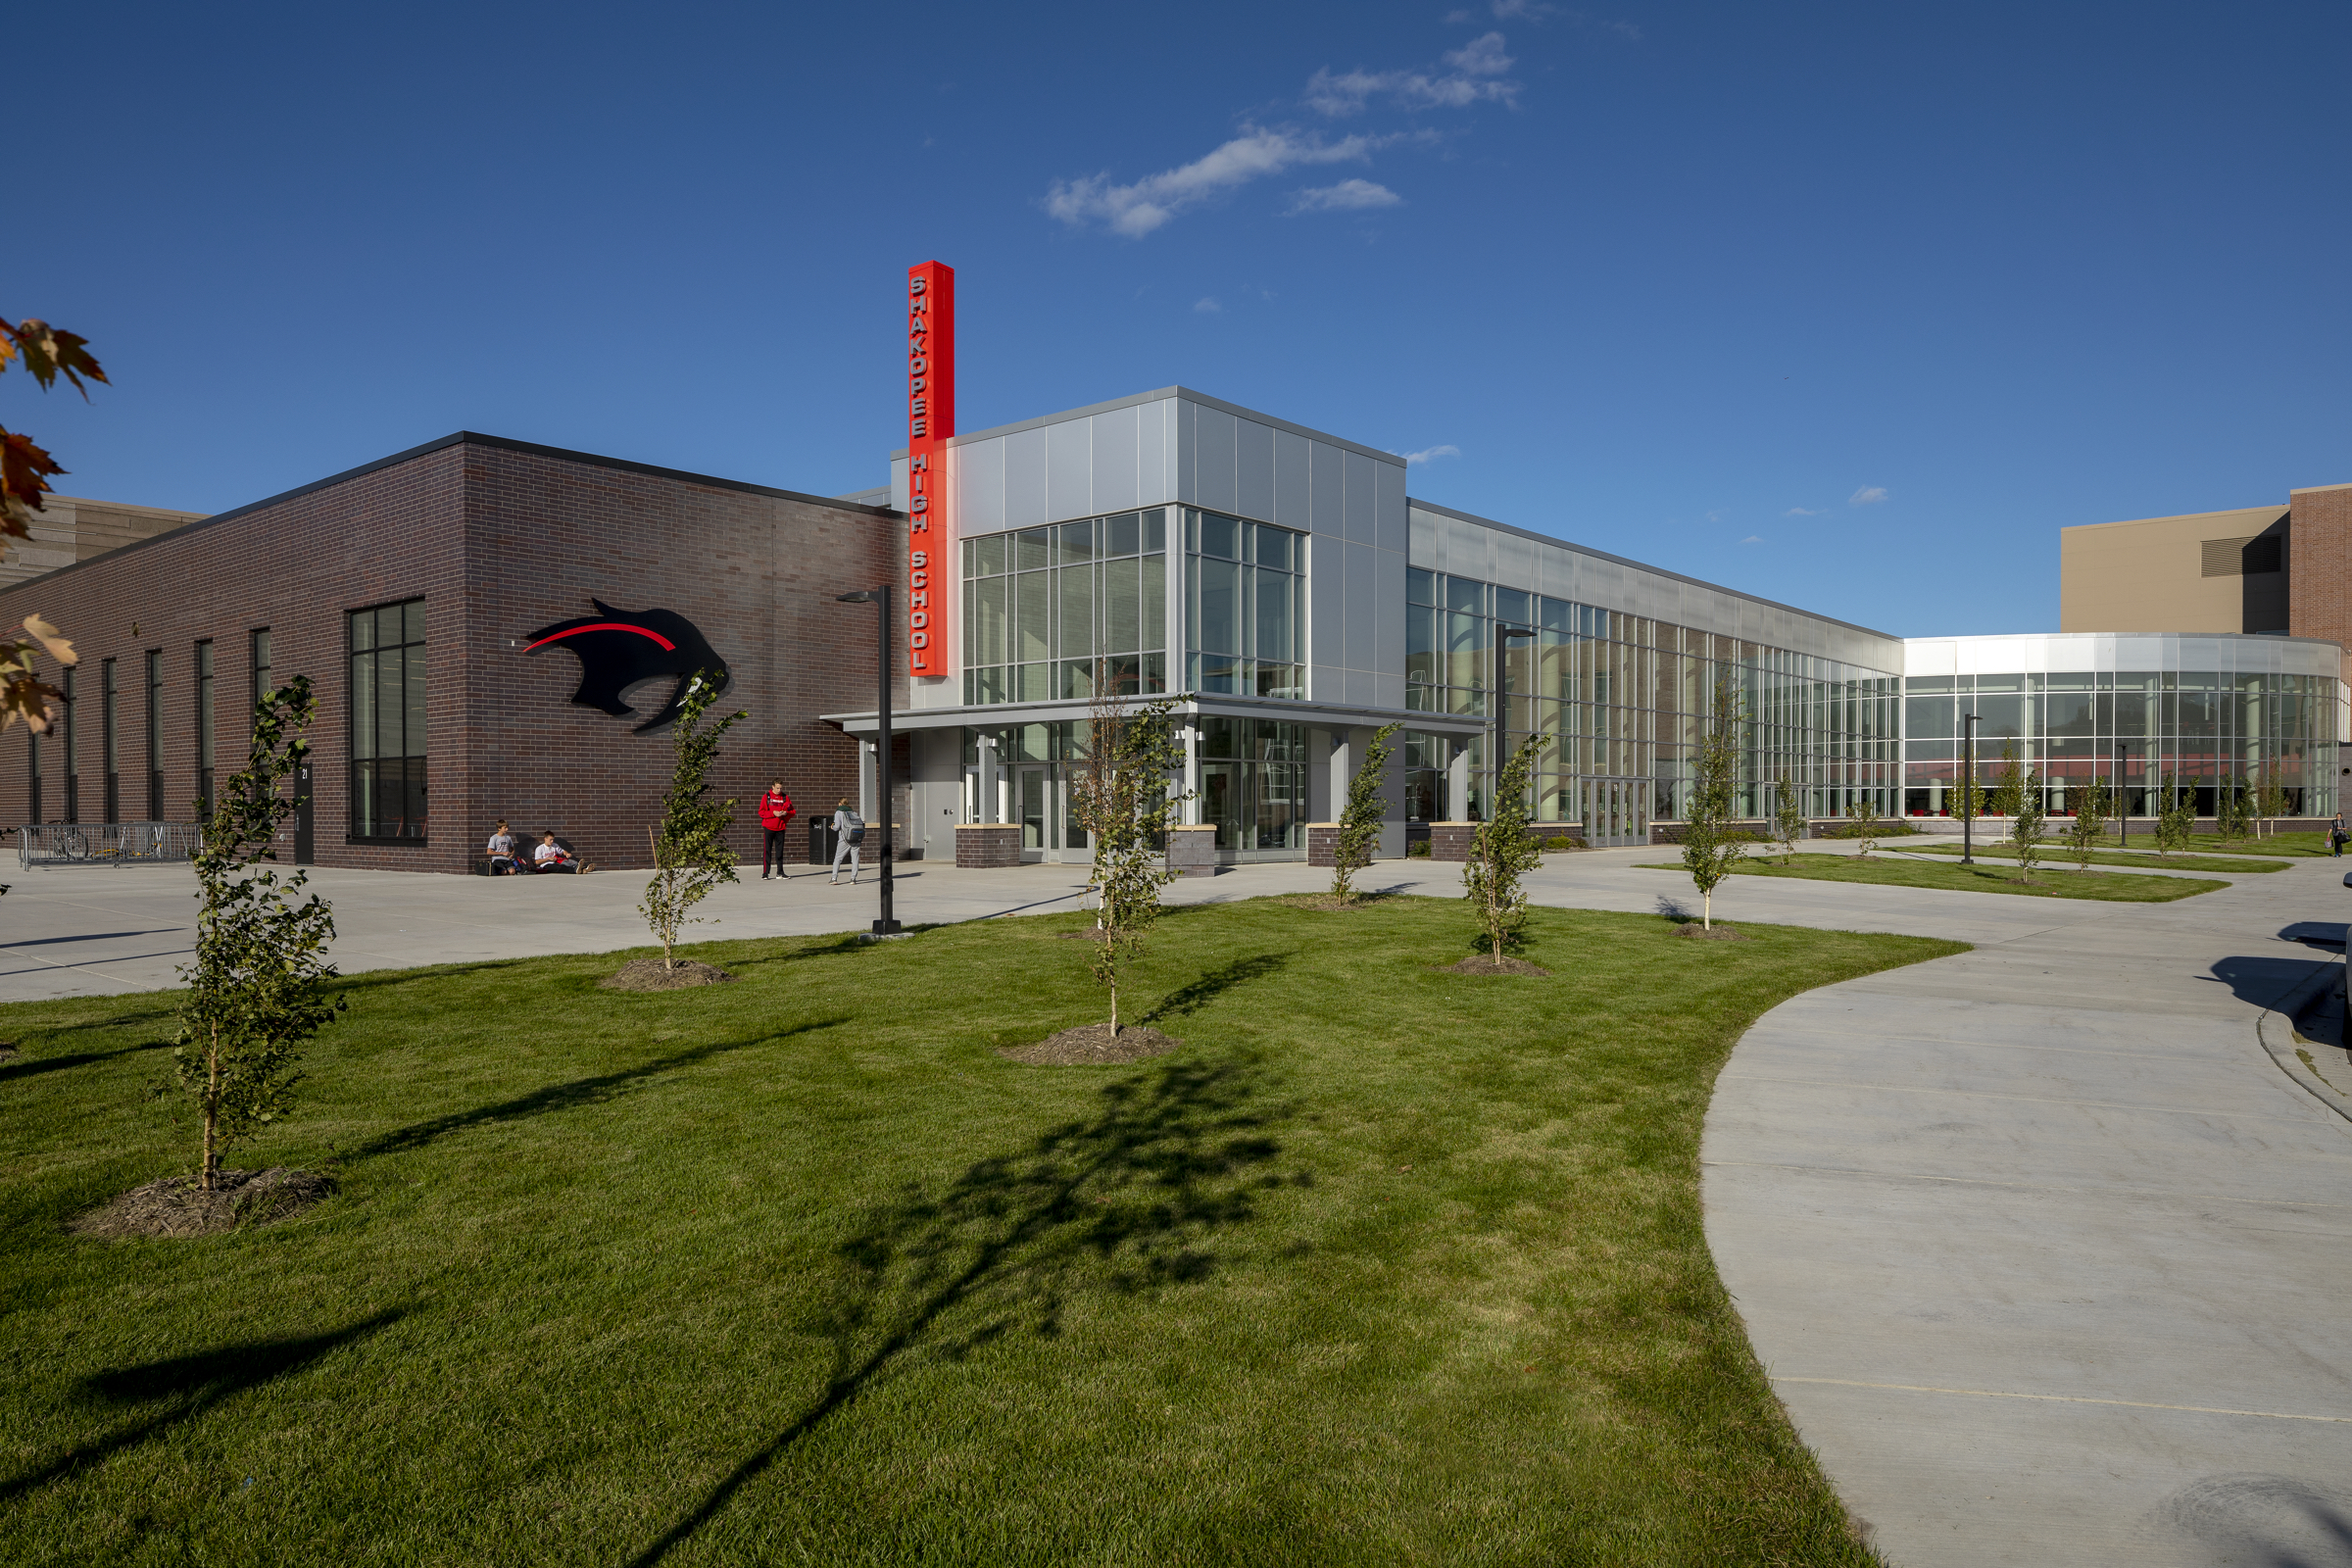 Shakopee High School